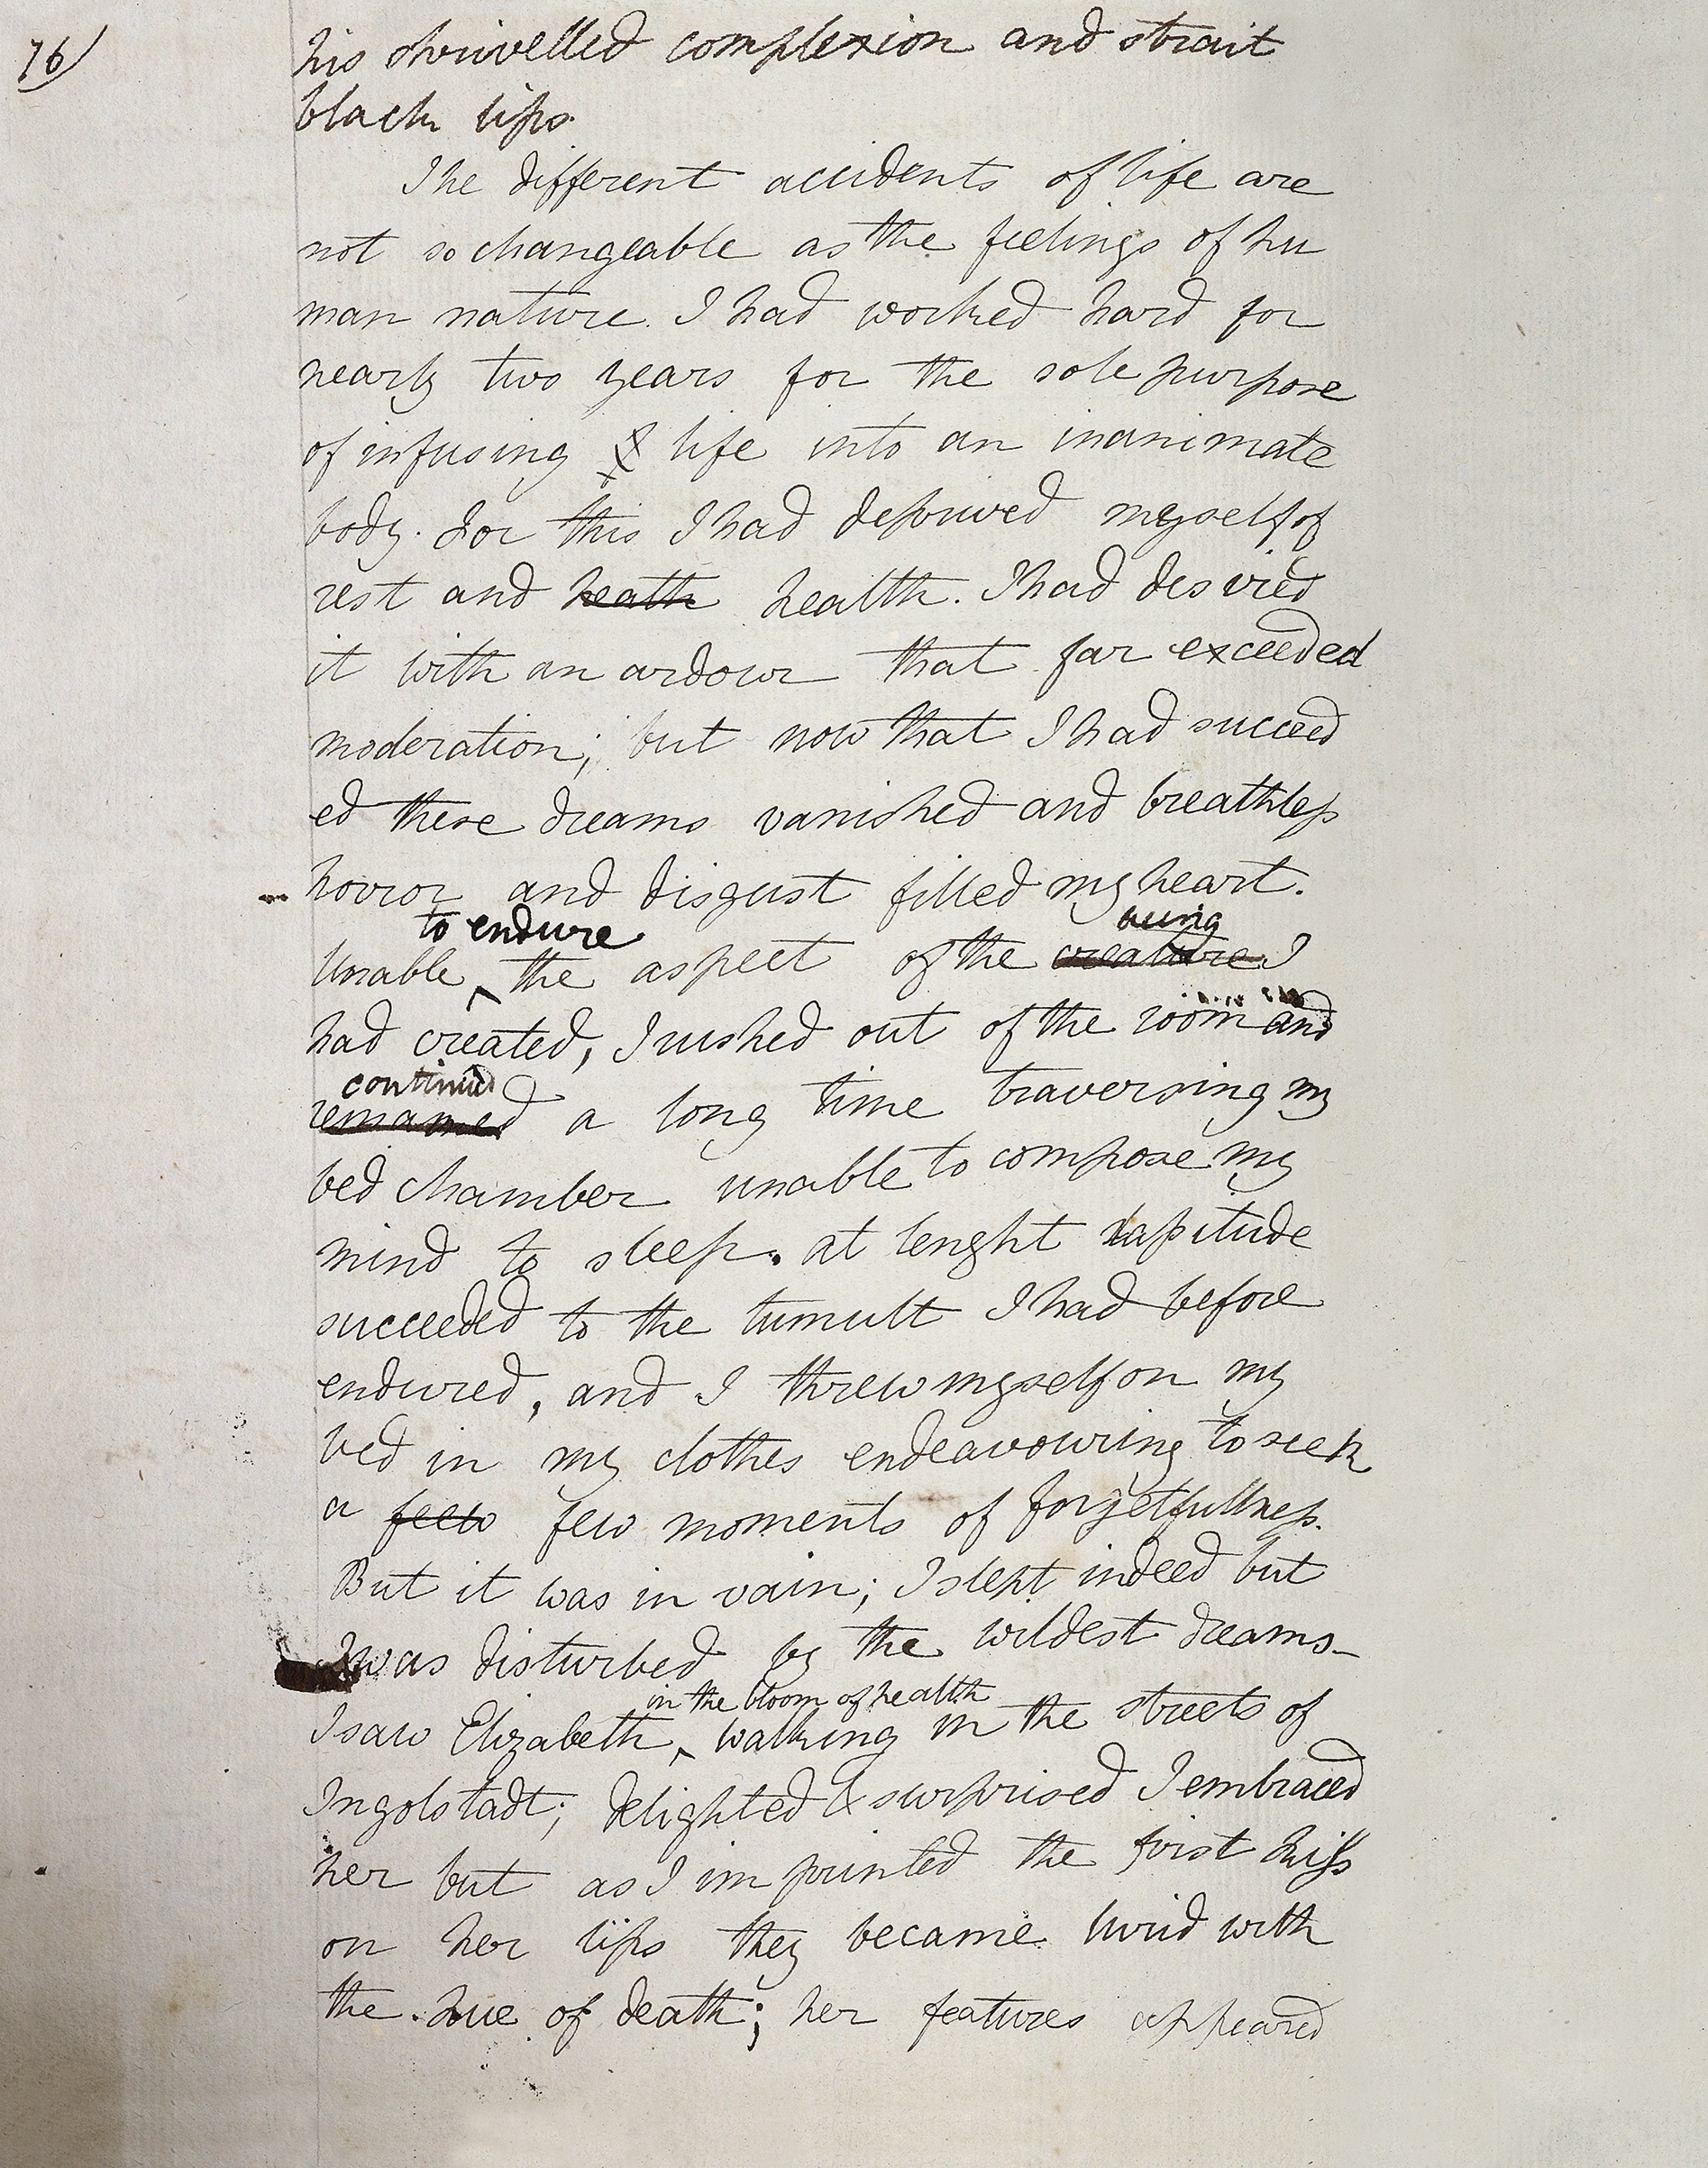 Mary Godwin's manuscript draft of the 'creation' chapter of Frankenstein, written in a notebook purchased in Geneva, and copied from the story she told on the night of 17th/18th of June 1816—the earliest surviving version, dating from that same summer.